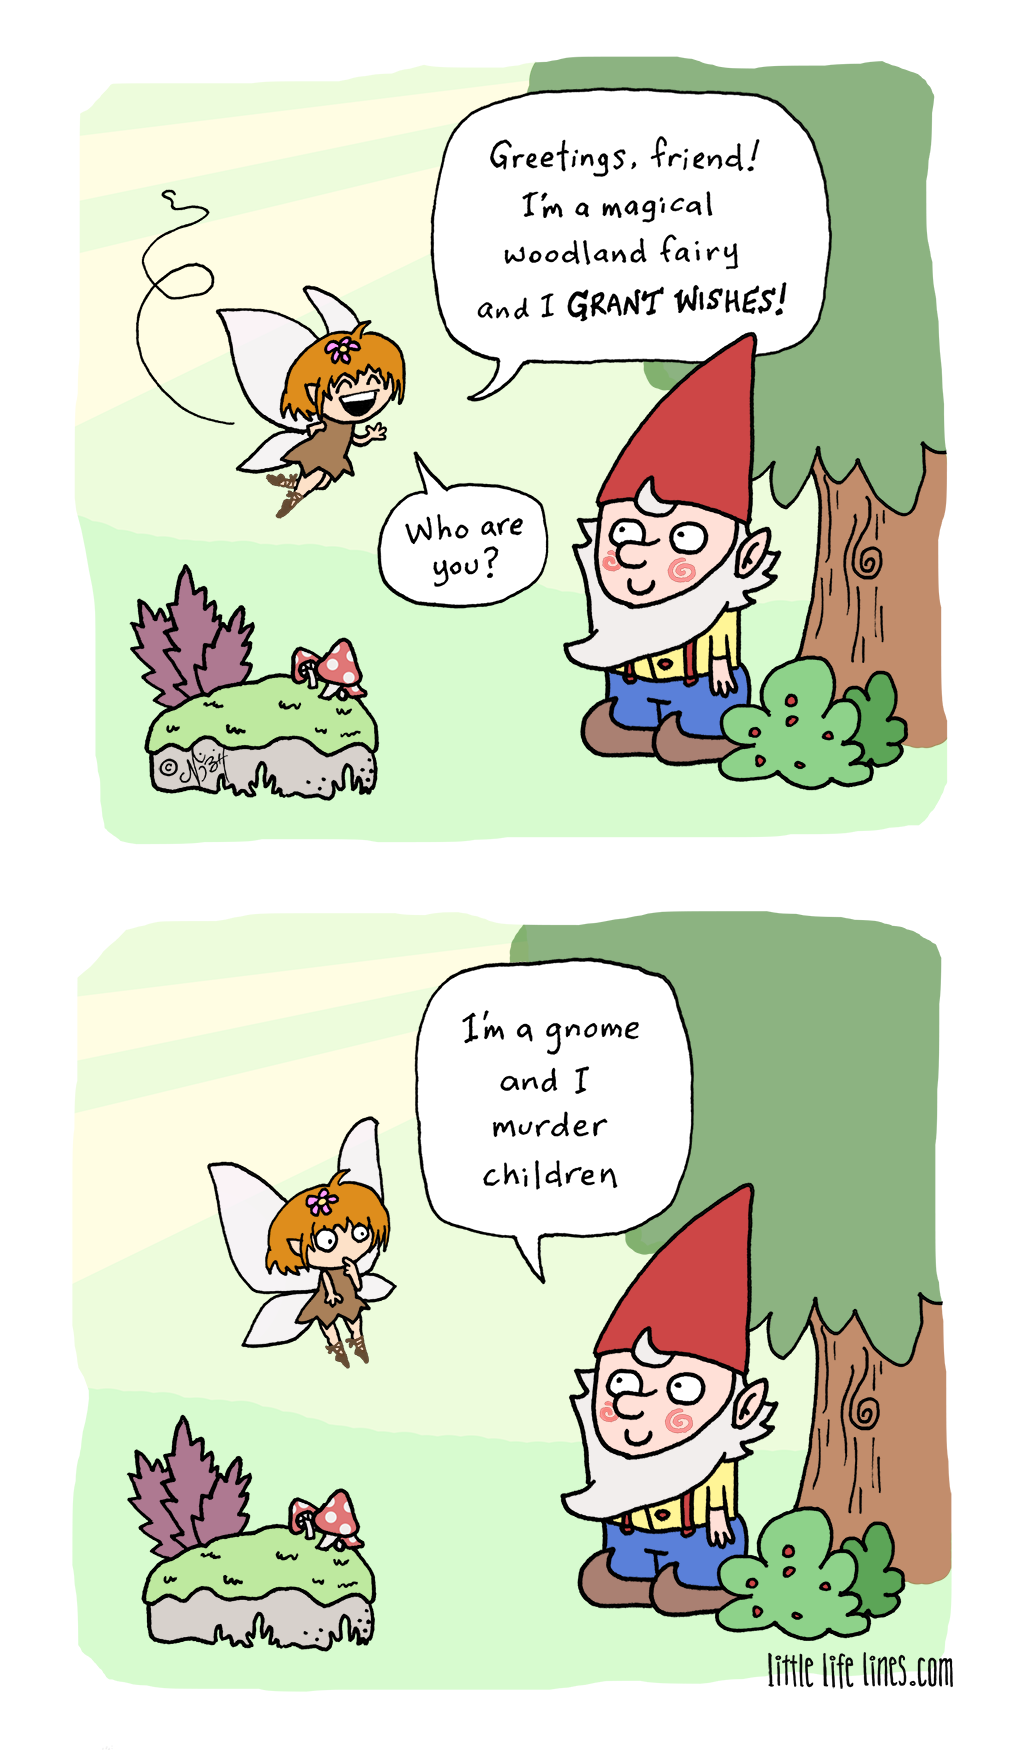 Cartoon Magical woodland fairy creature that grants wishes meets a homicidal gnome ©little life lines comic by Nick Birch